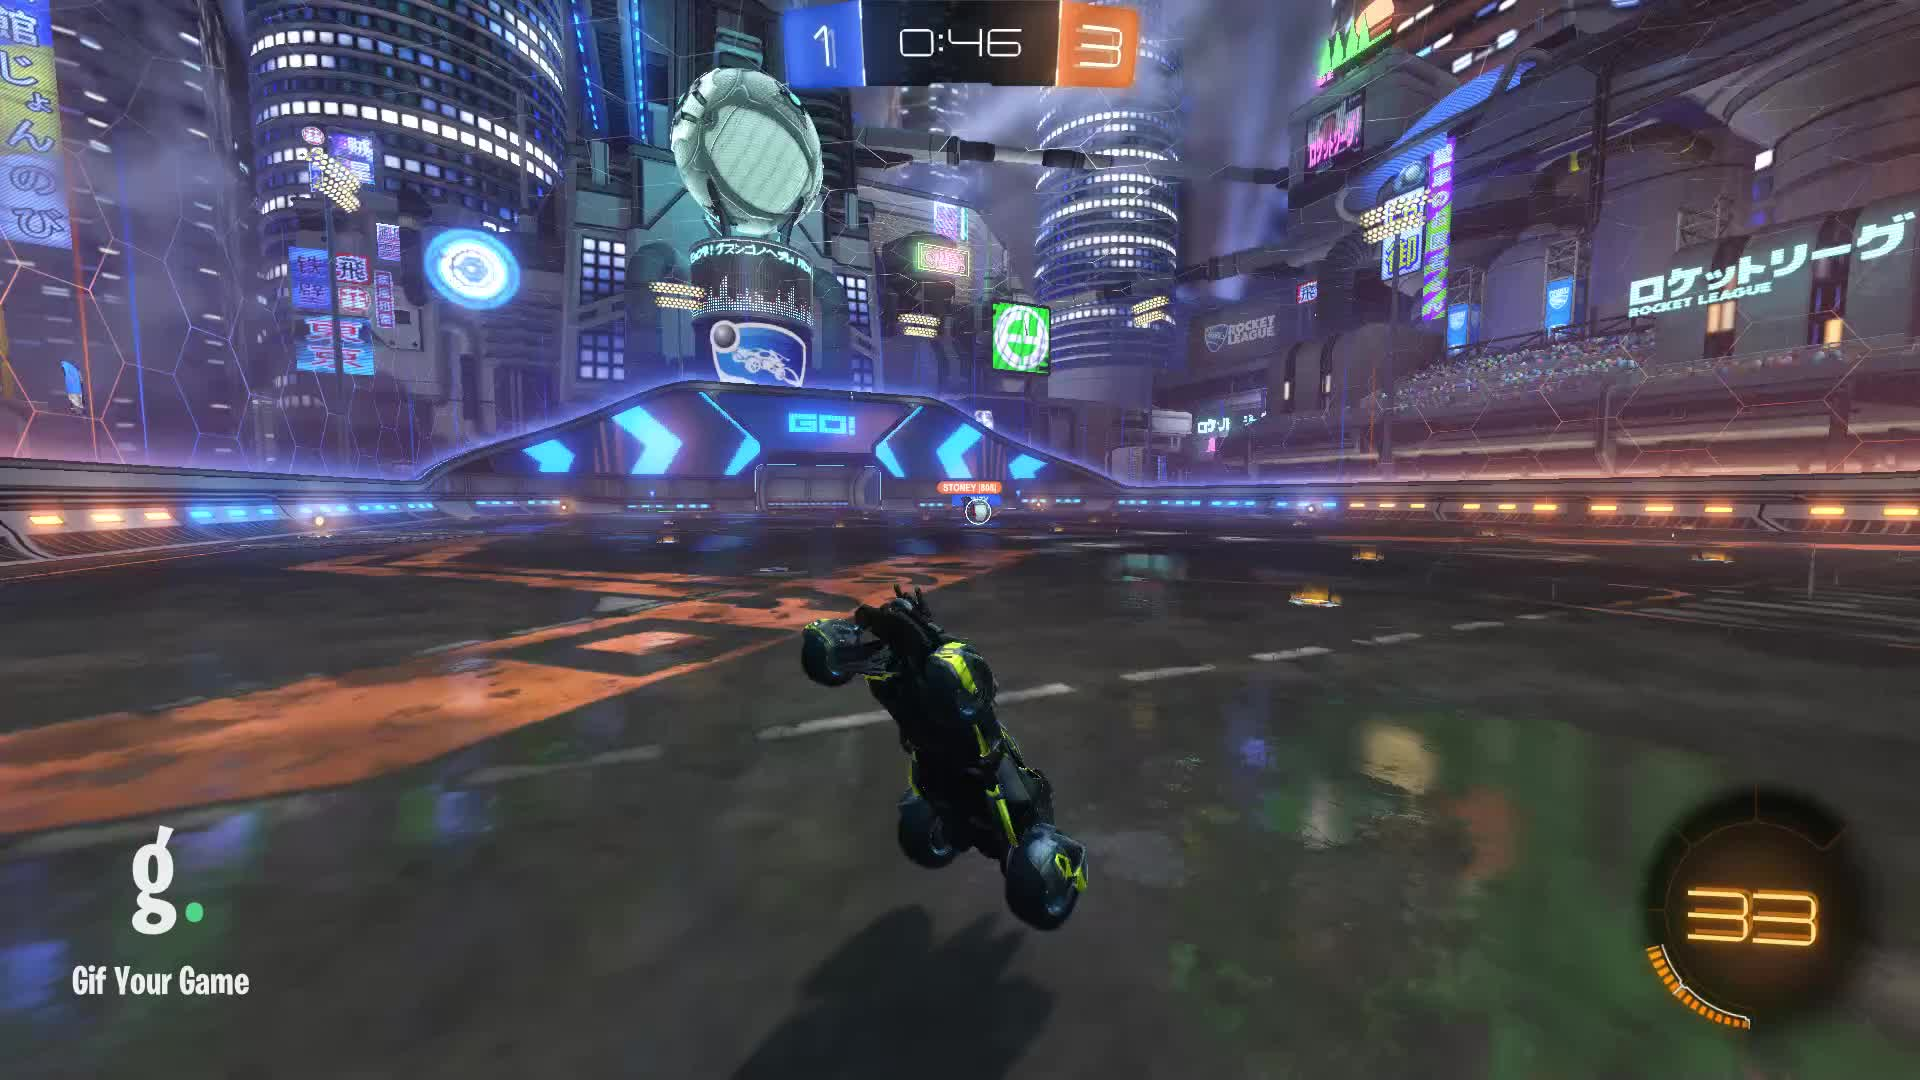 Assist, Dilweed [D33], Gif Your Game, GifYourGame, Rocket League, RocketLeague, Assist 4: Dilweed [D33] GIFs